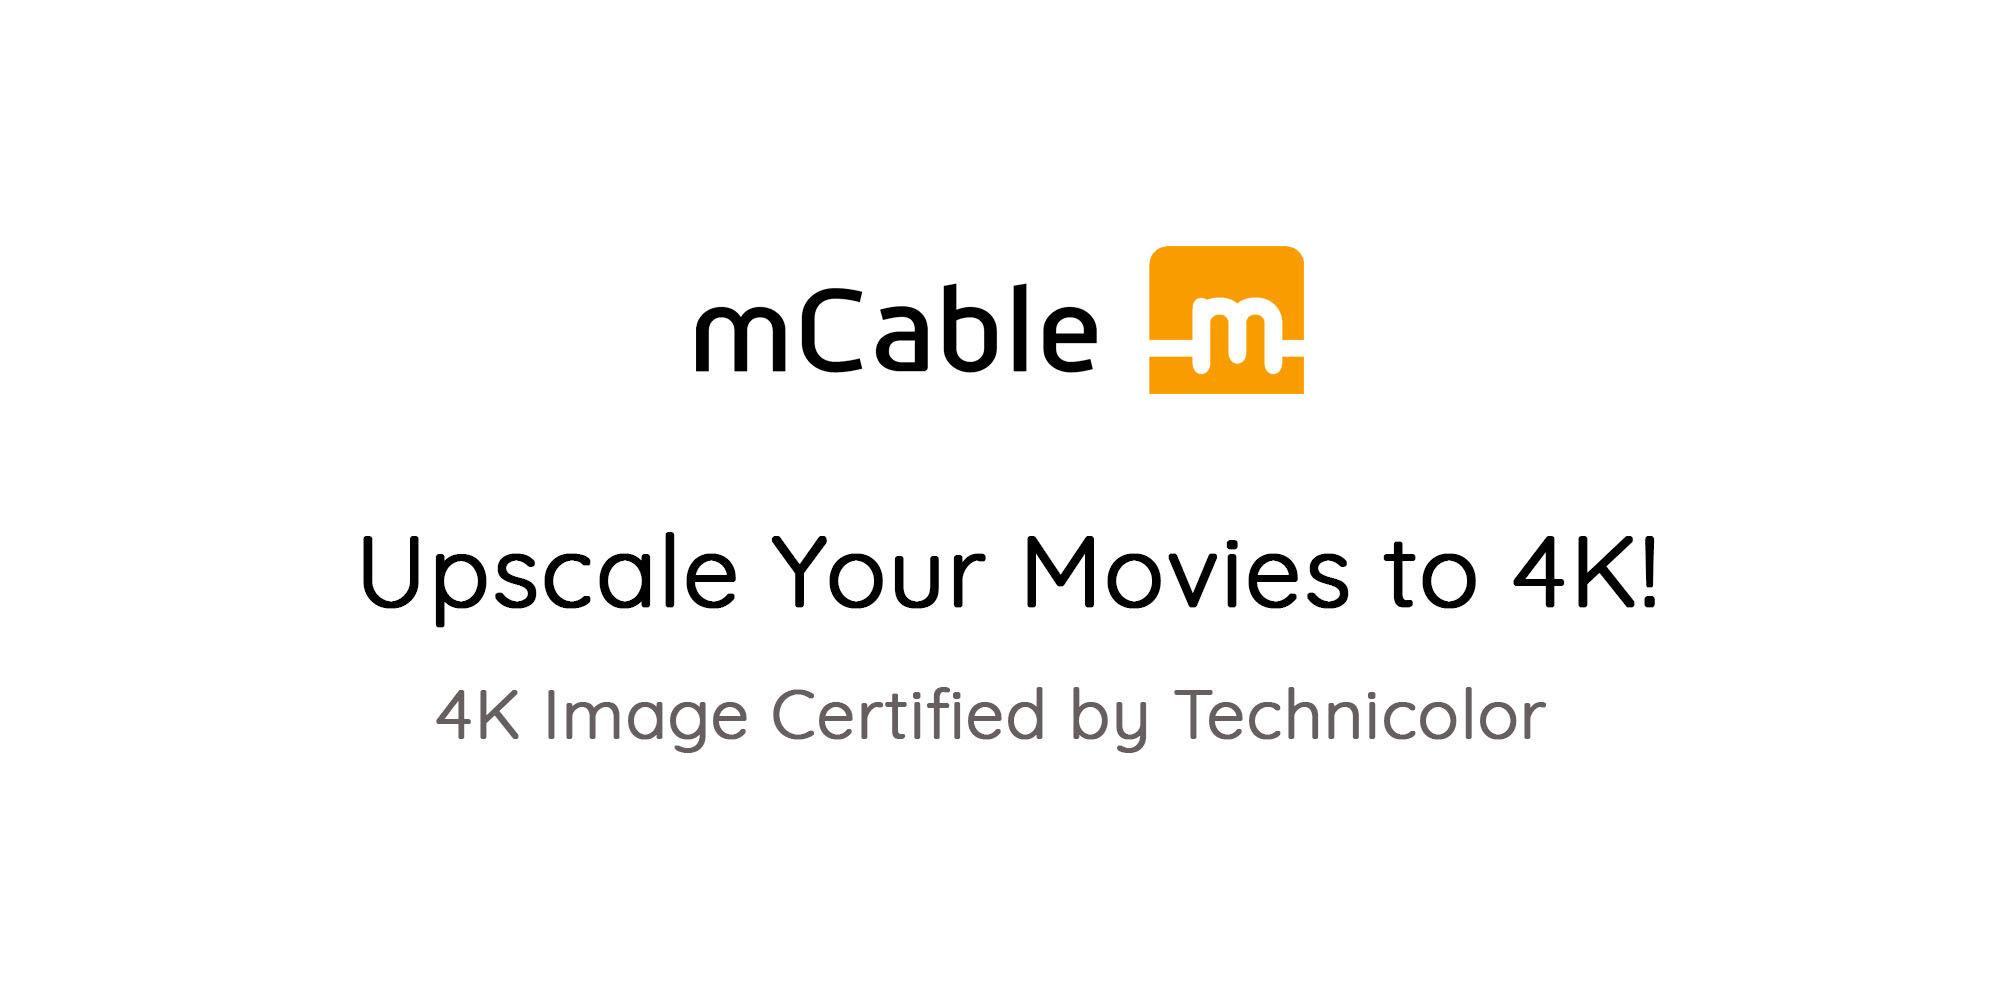 Upscale your movies to 4K. 4K image certified by Technicolor.